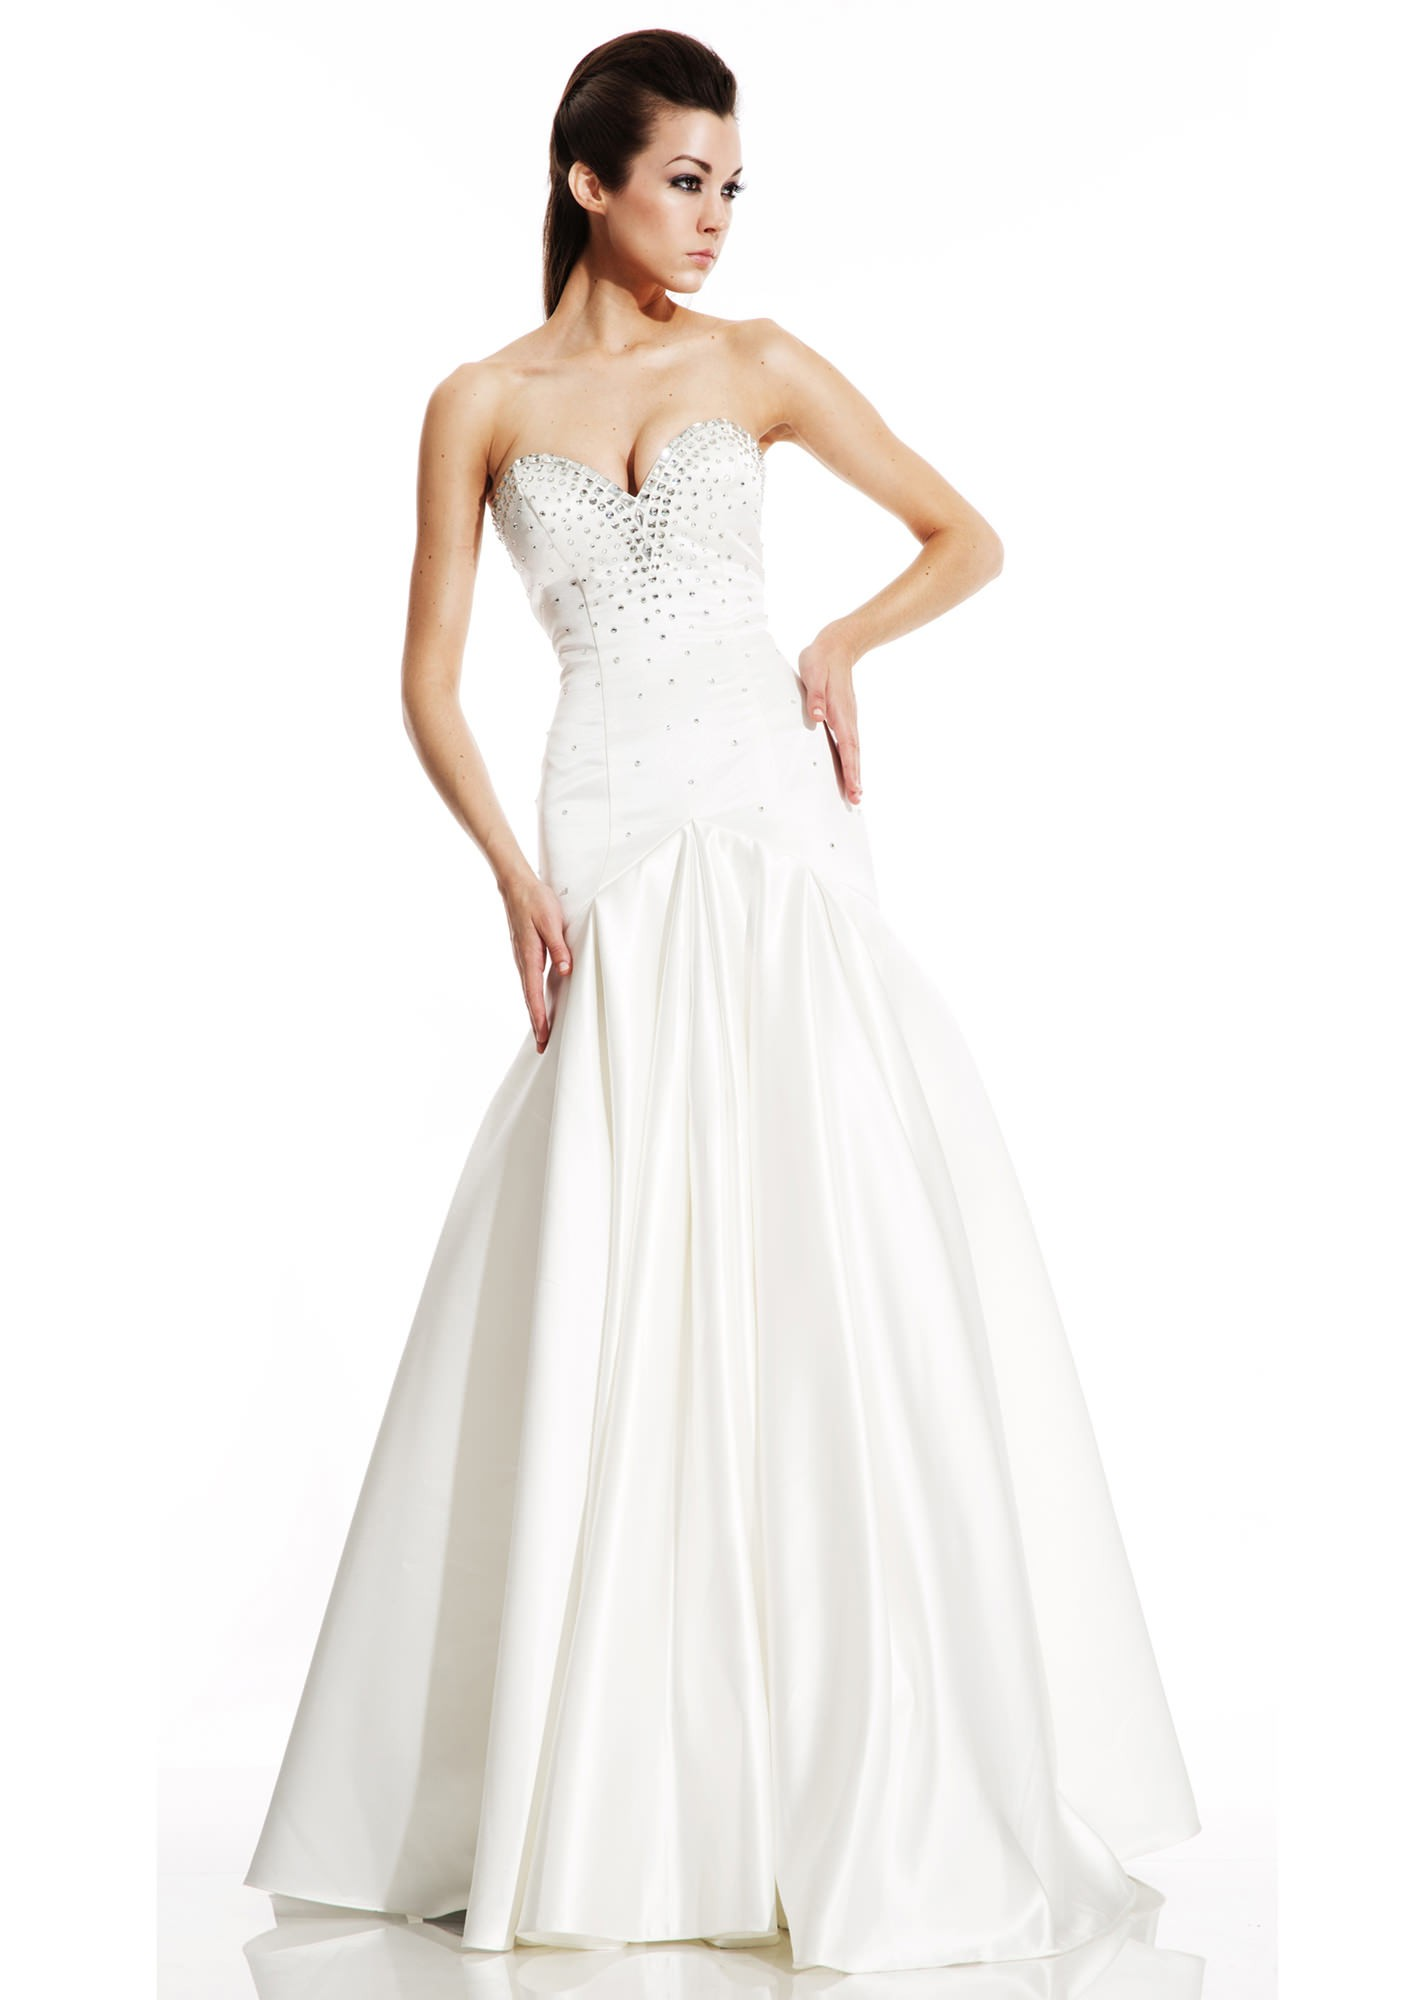 Johnathan Kayne by Joshua McKinley 486 Strapless Mermaid Gown